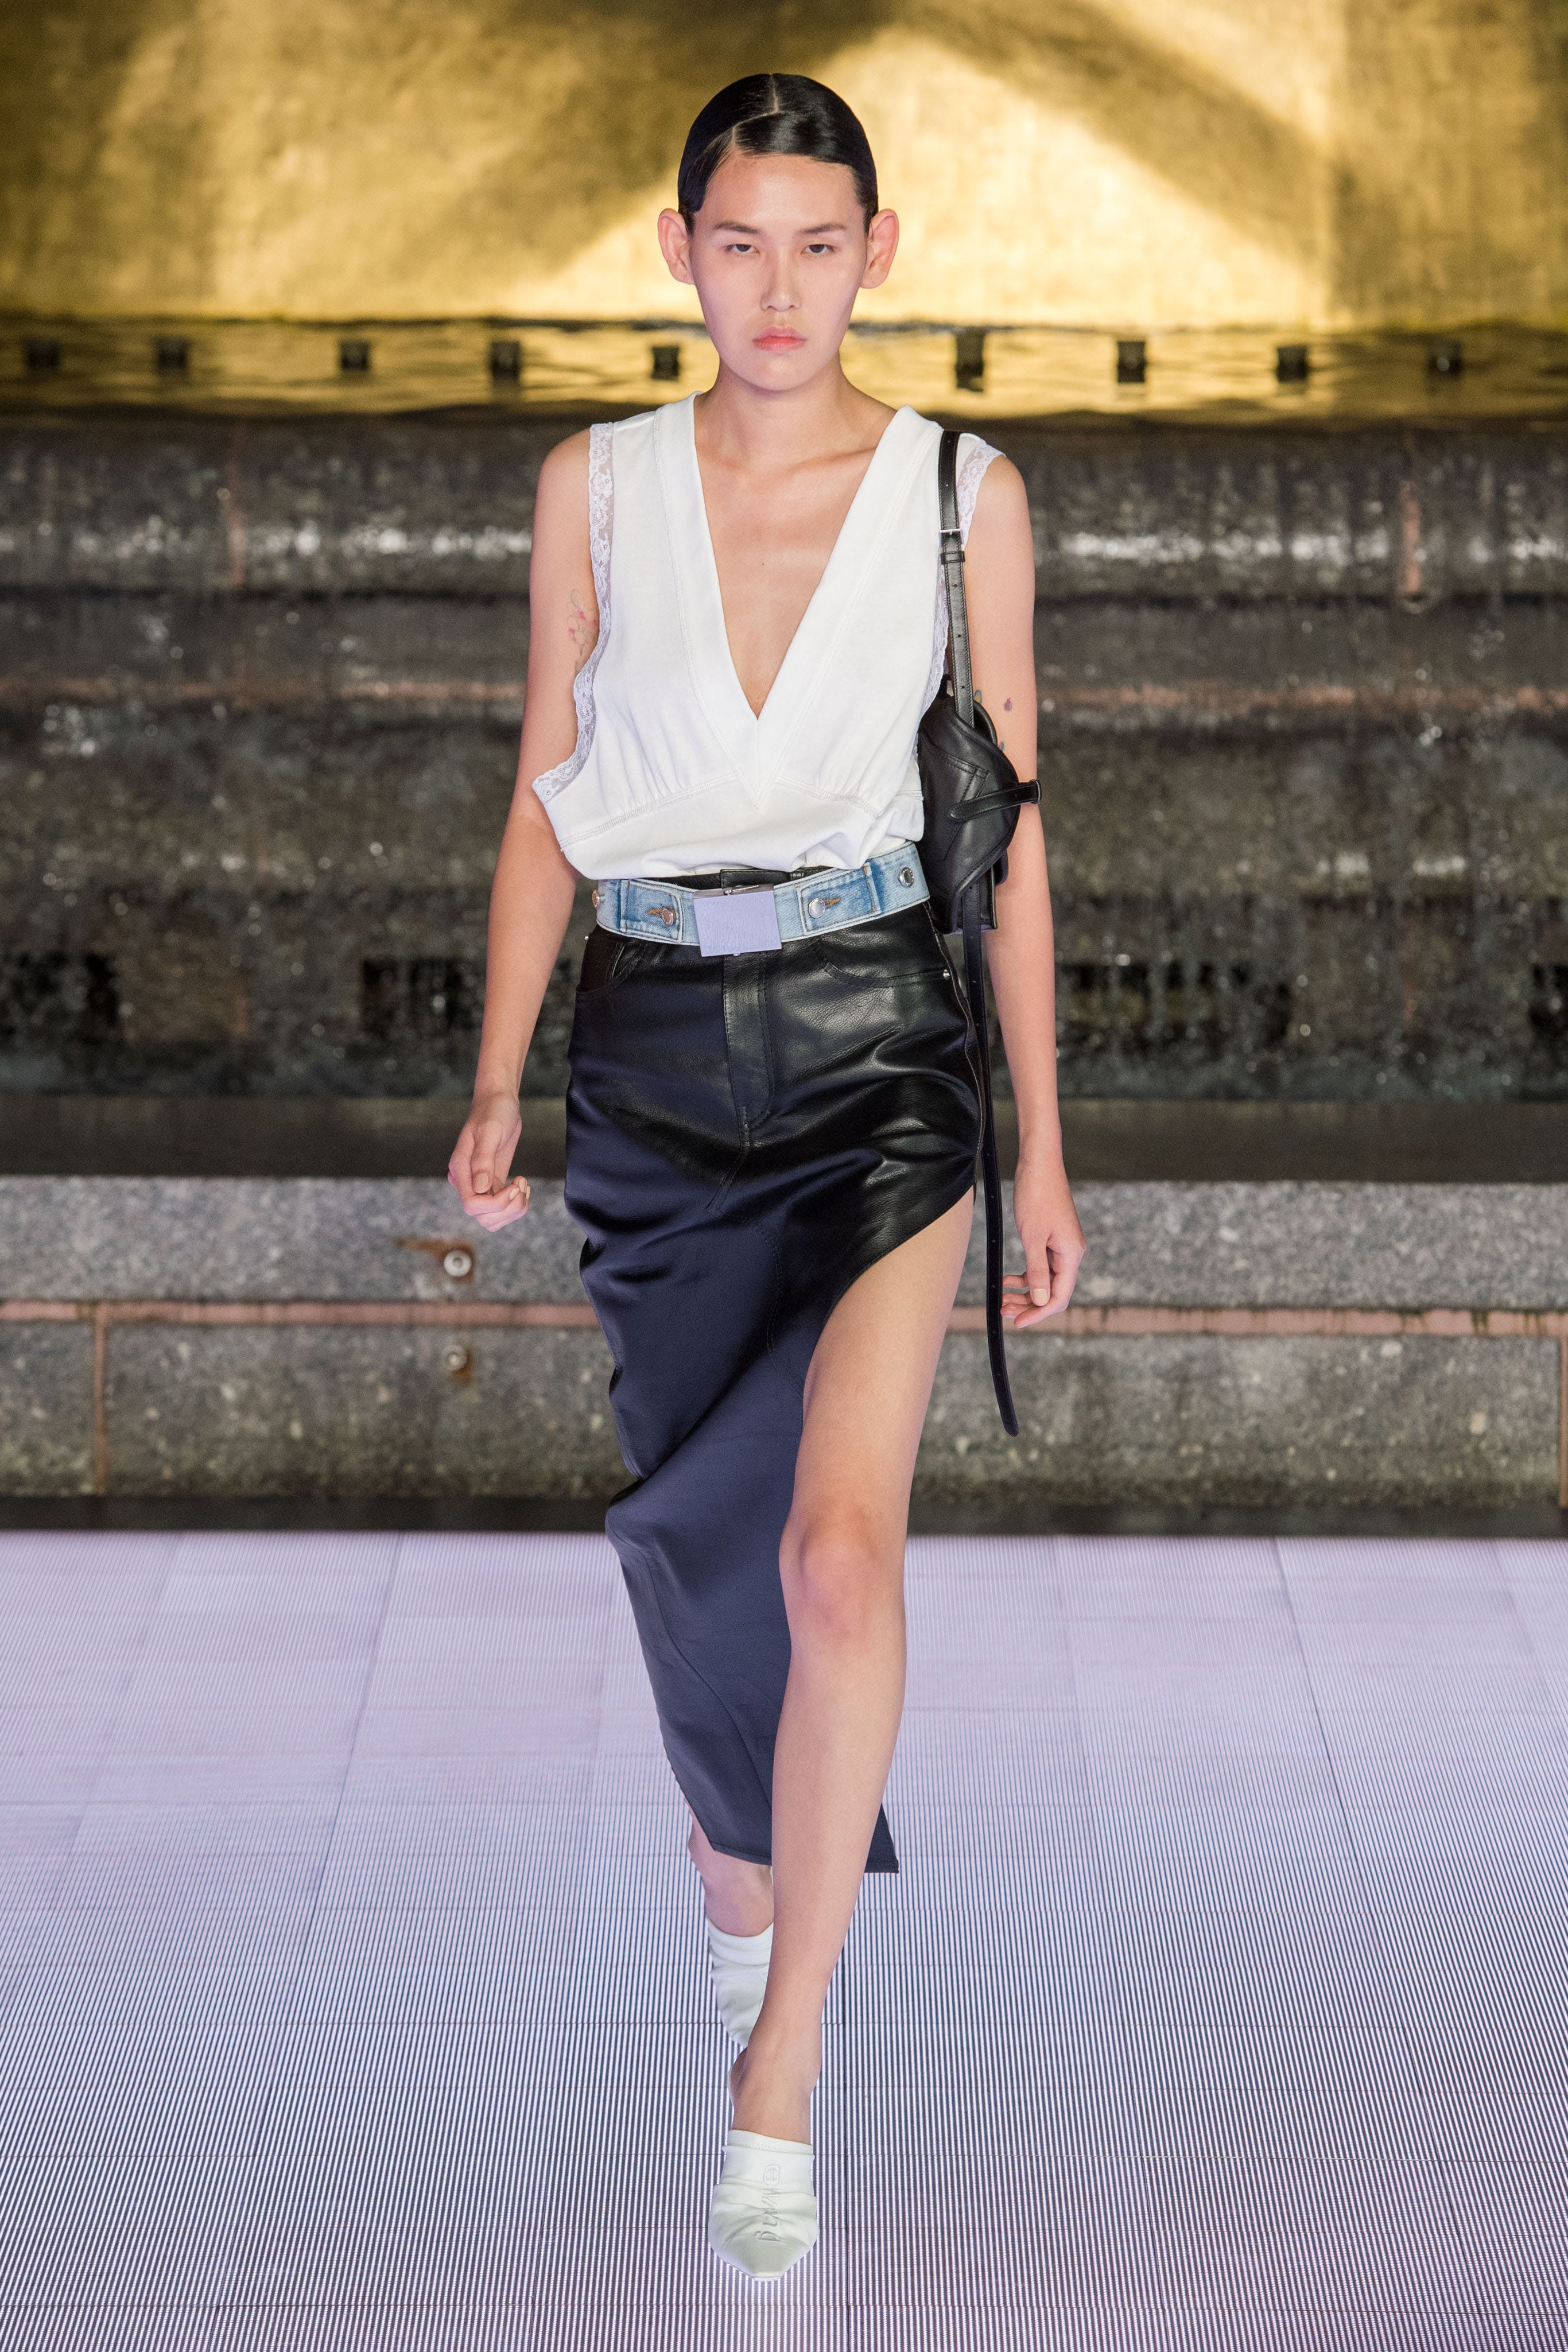 Alexander Wang Runway Deep V Neck Loose Fit Top in White Asymmetrical Slit Skirt in Black Leather Vanna Mule in White Spring 20 RTW